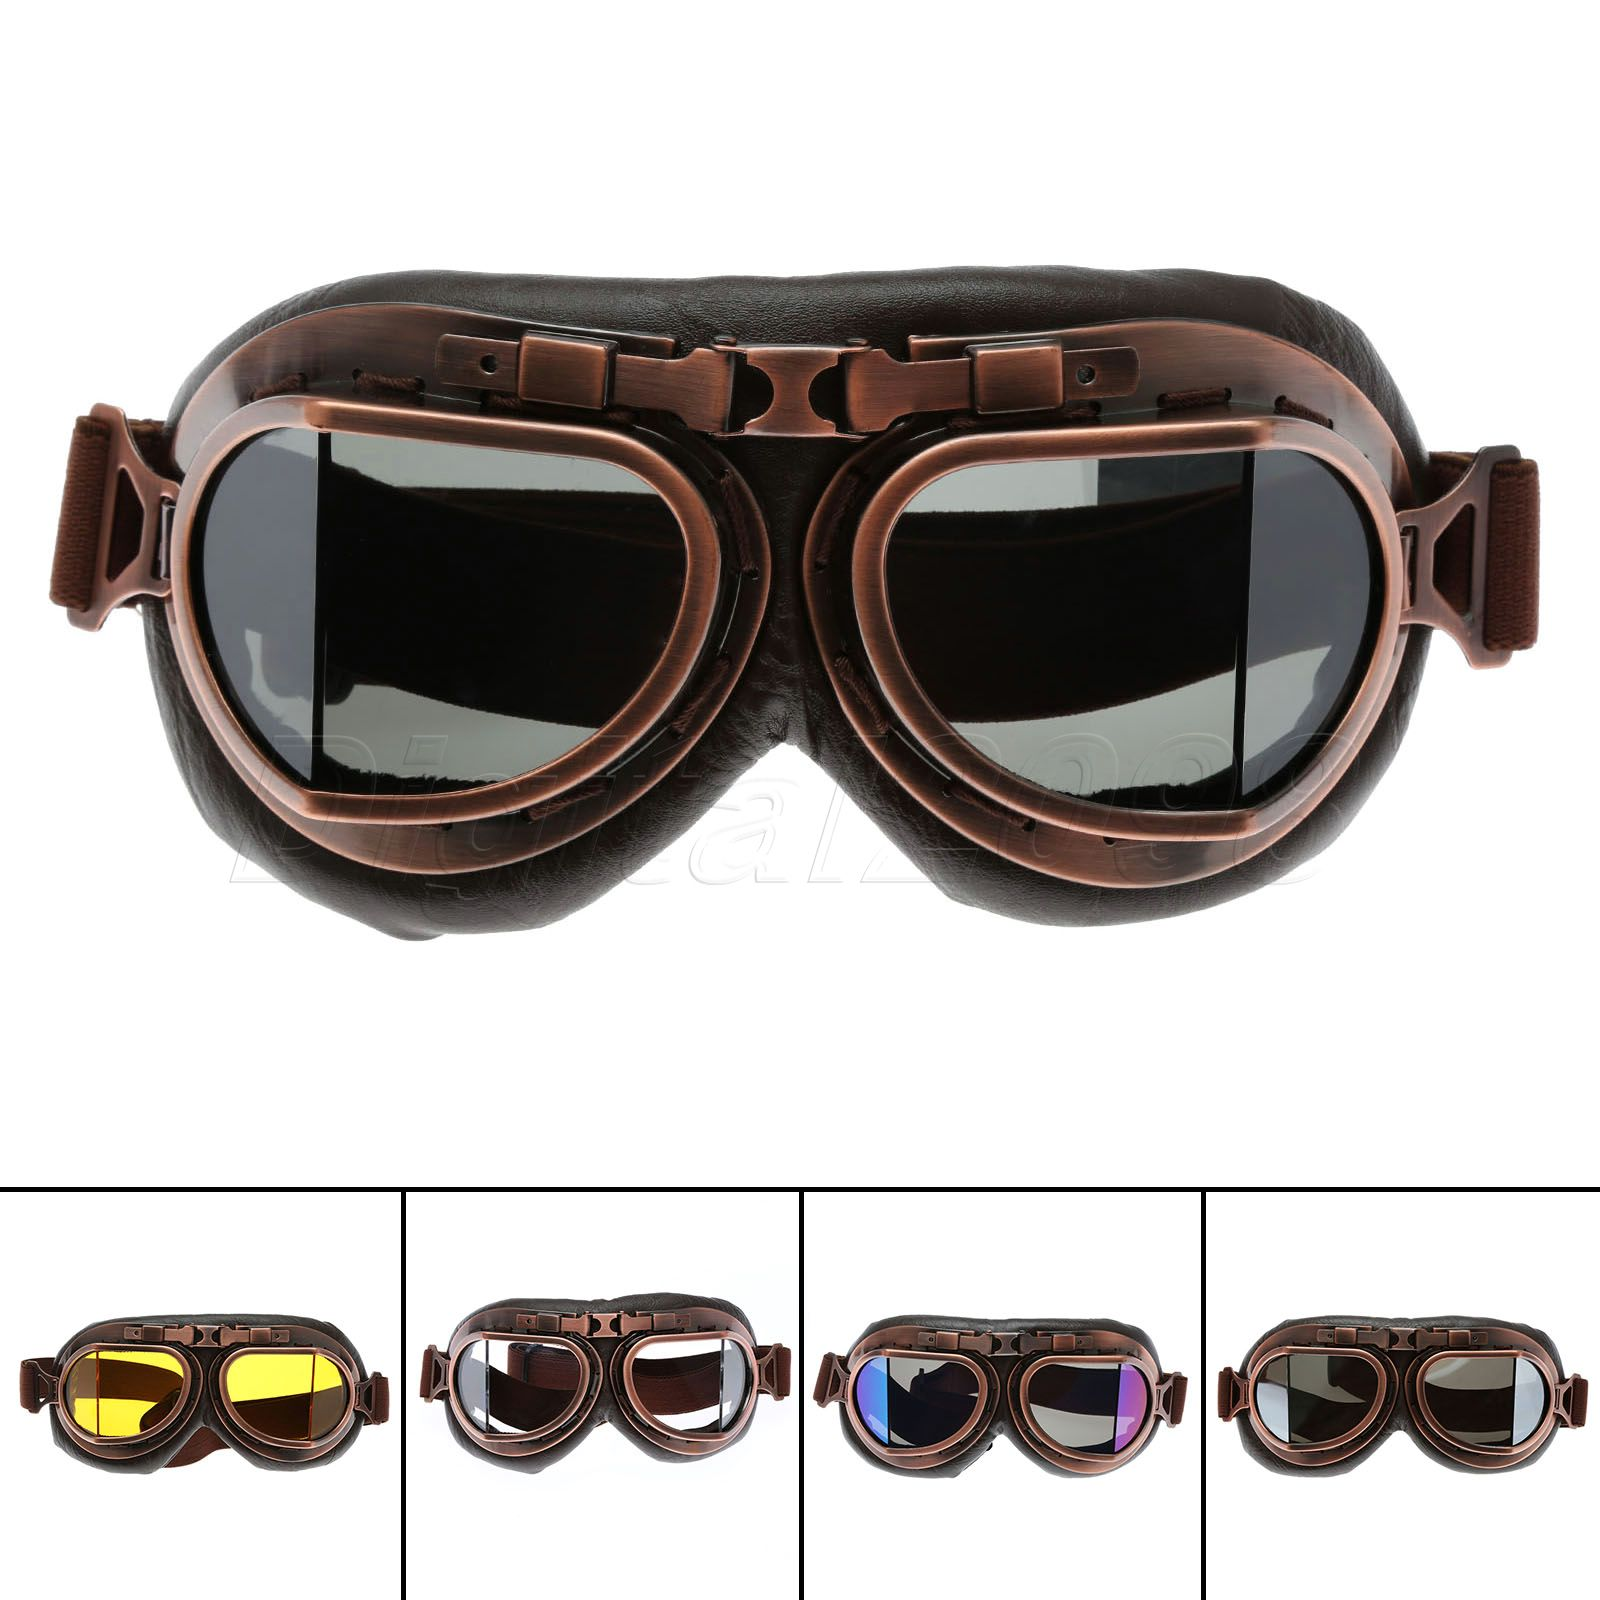 Yetaha WWII RAF Vintage Motorcycle Goggles Harley Motocross Aviator Pilot Cruiser Glasses ATV Dirt Bike Motor Helmet 5 Colors